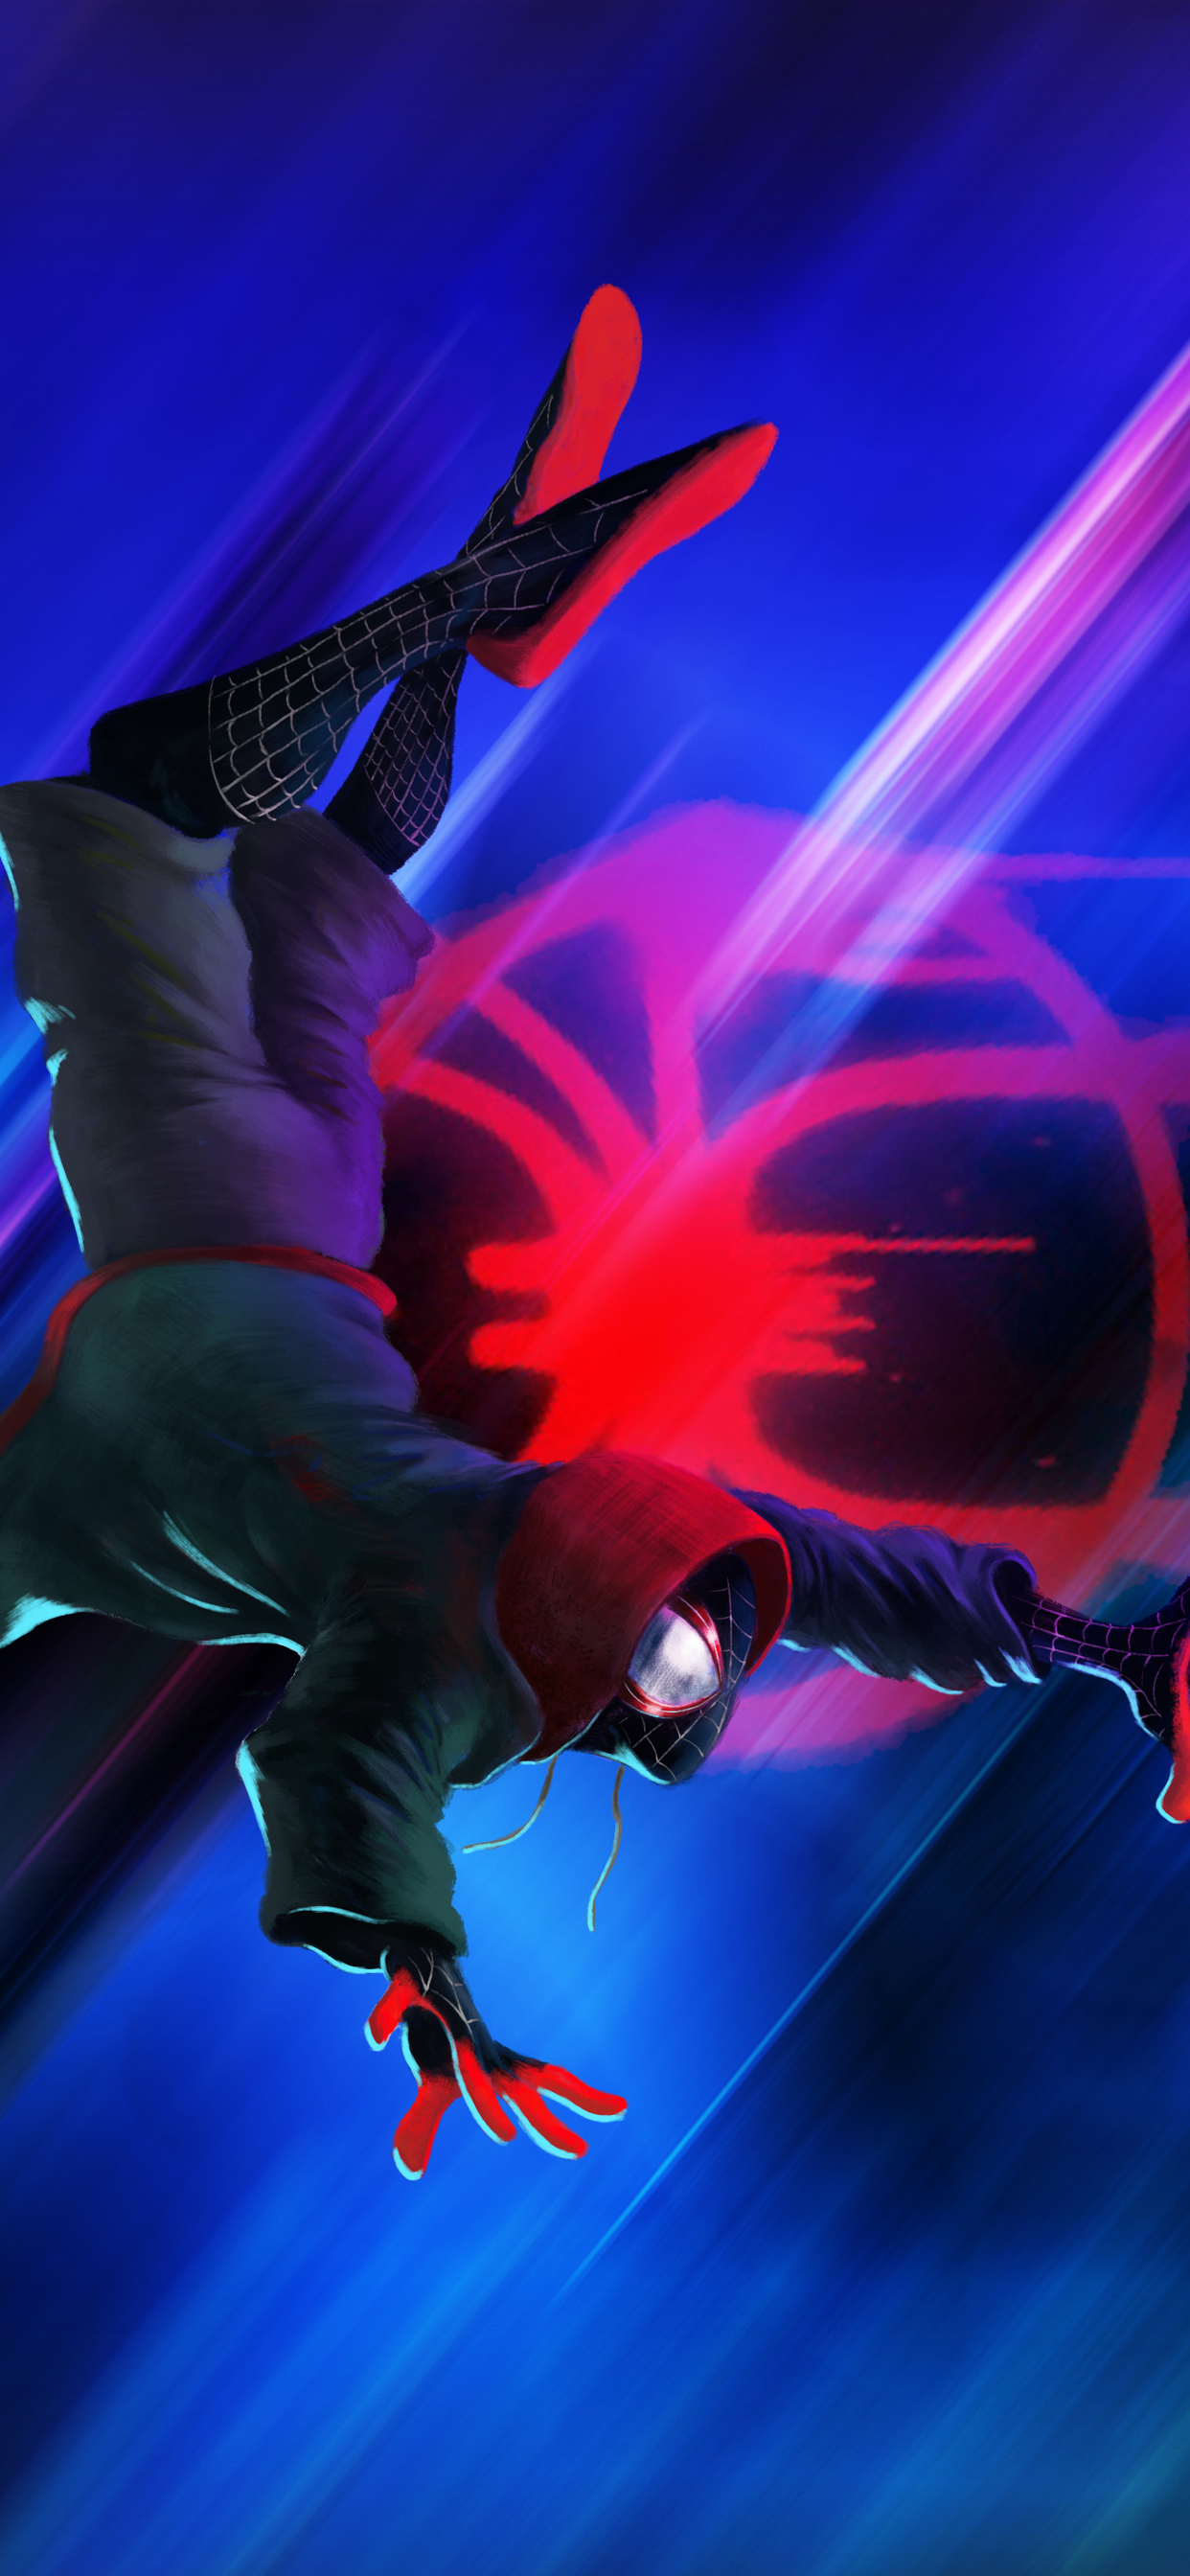 1242x2688 Spider Man Into The Spider Verse Illustration Iphone Xs